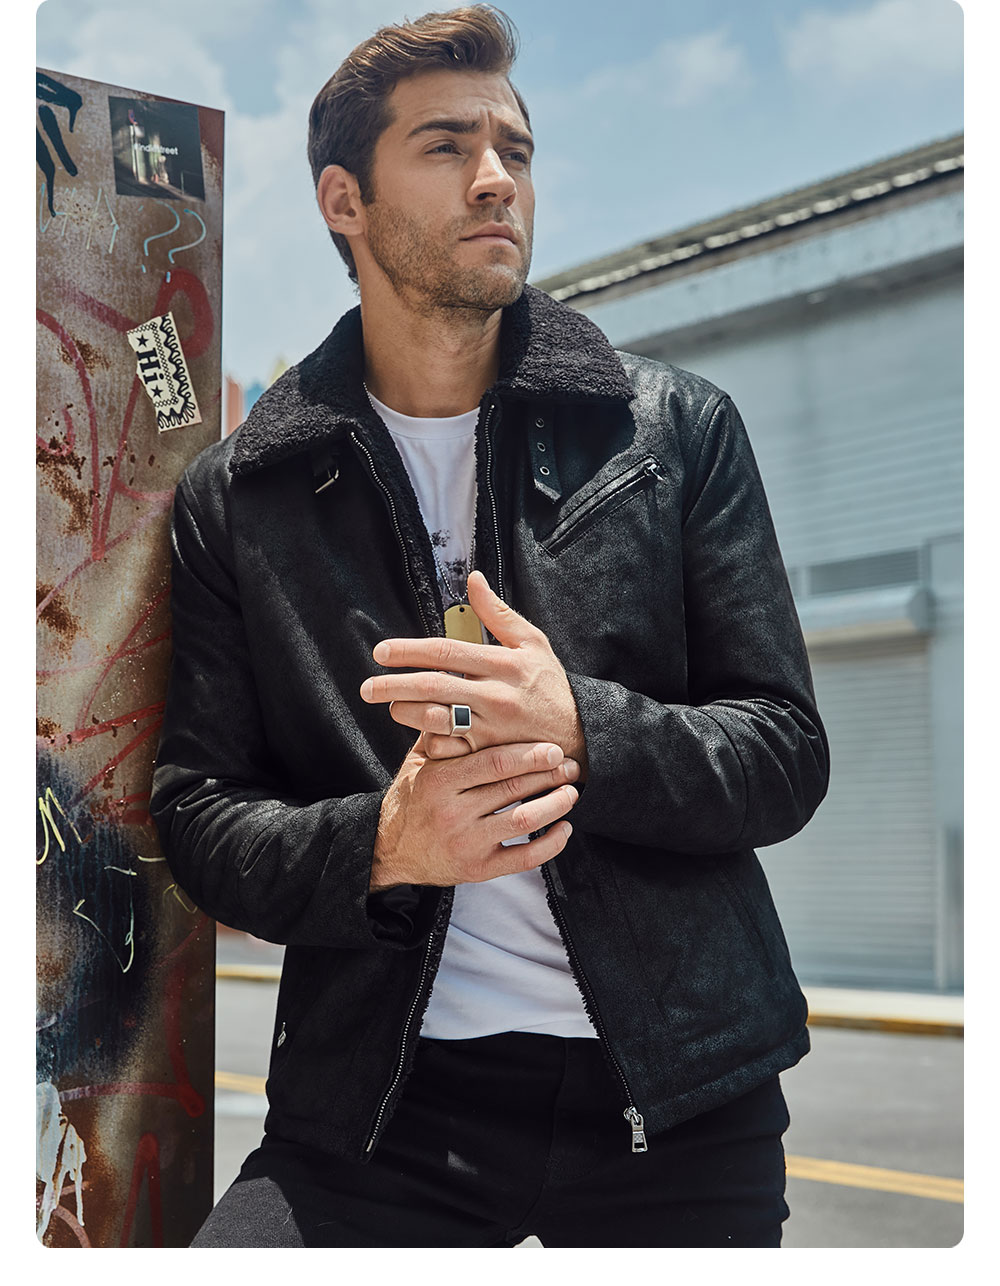 H3e3ee552f9c04244bb9b2eb7d83e479cF FLAVOR New Men's Genuine Leather Motorcycle Jacket Pigskin with Faux Shearling Real Leather Jacket Bomber Coat Men